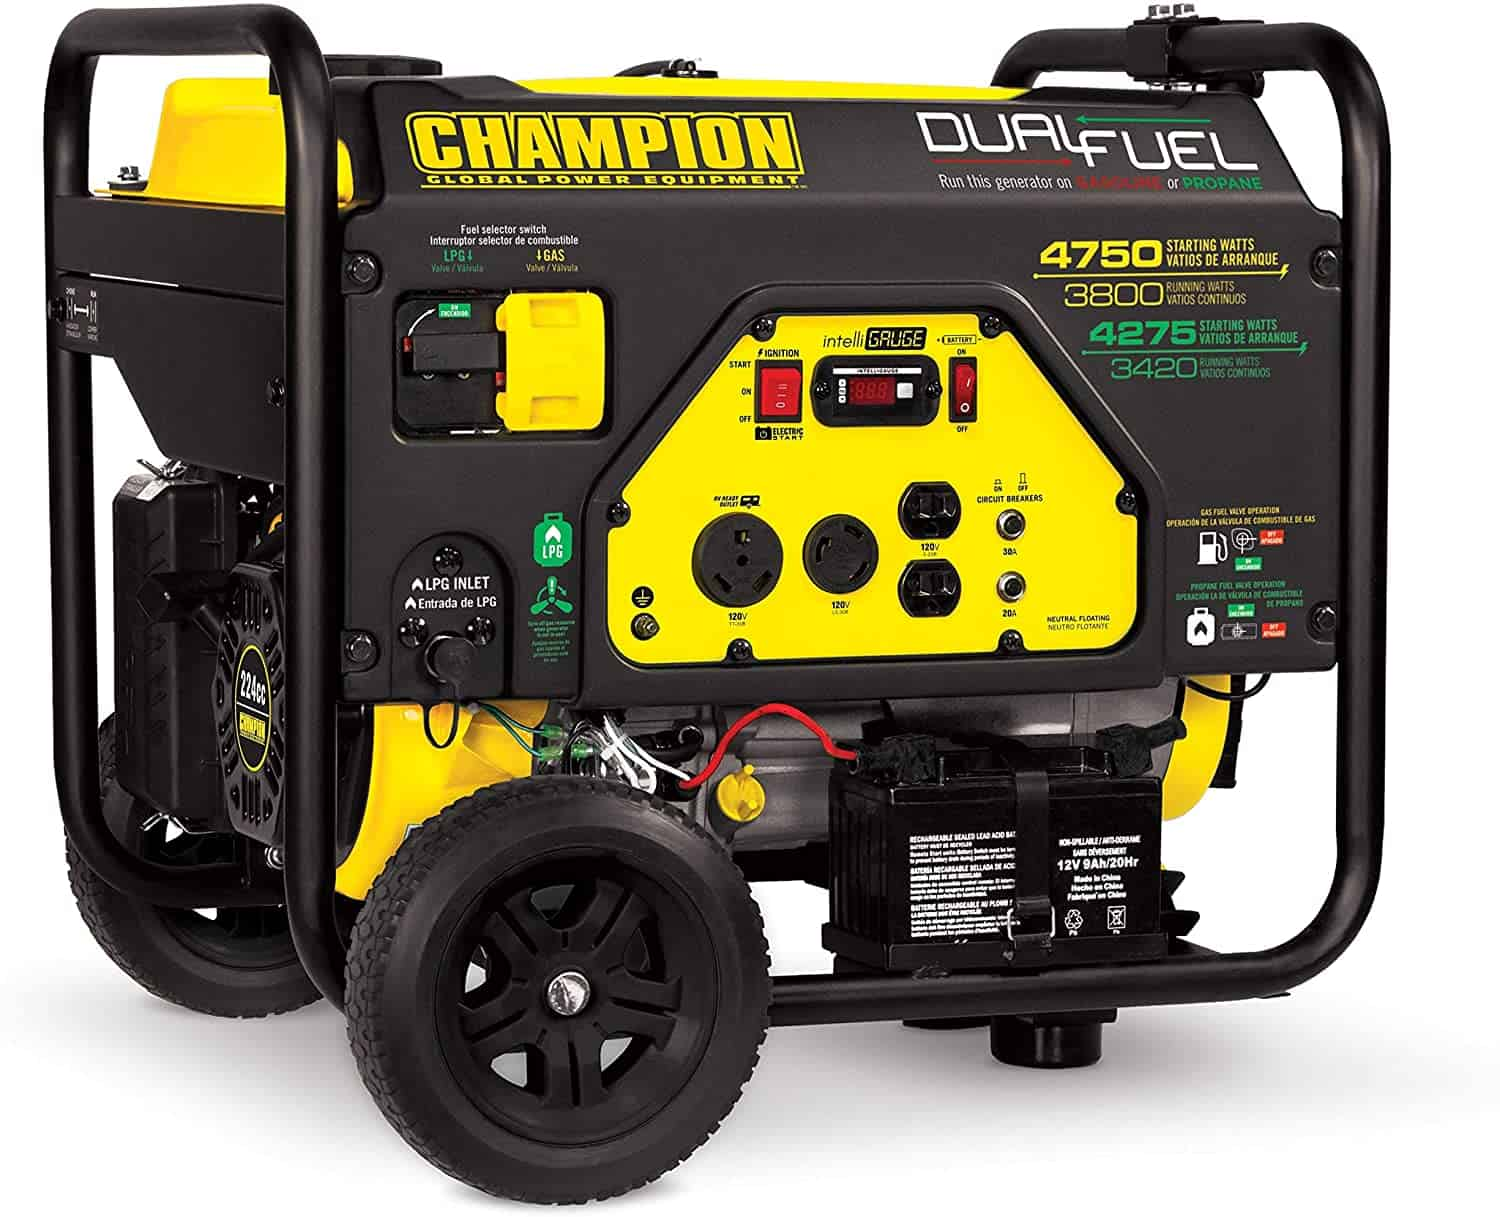 champion 4750 dual fuel portable generator